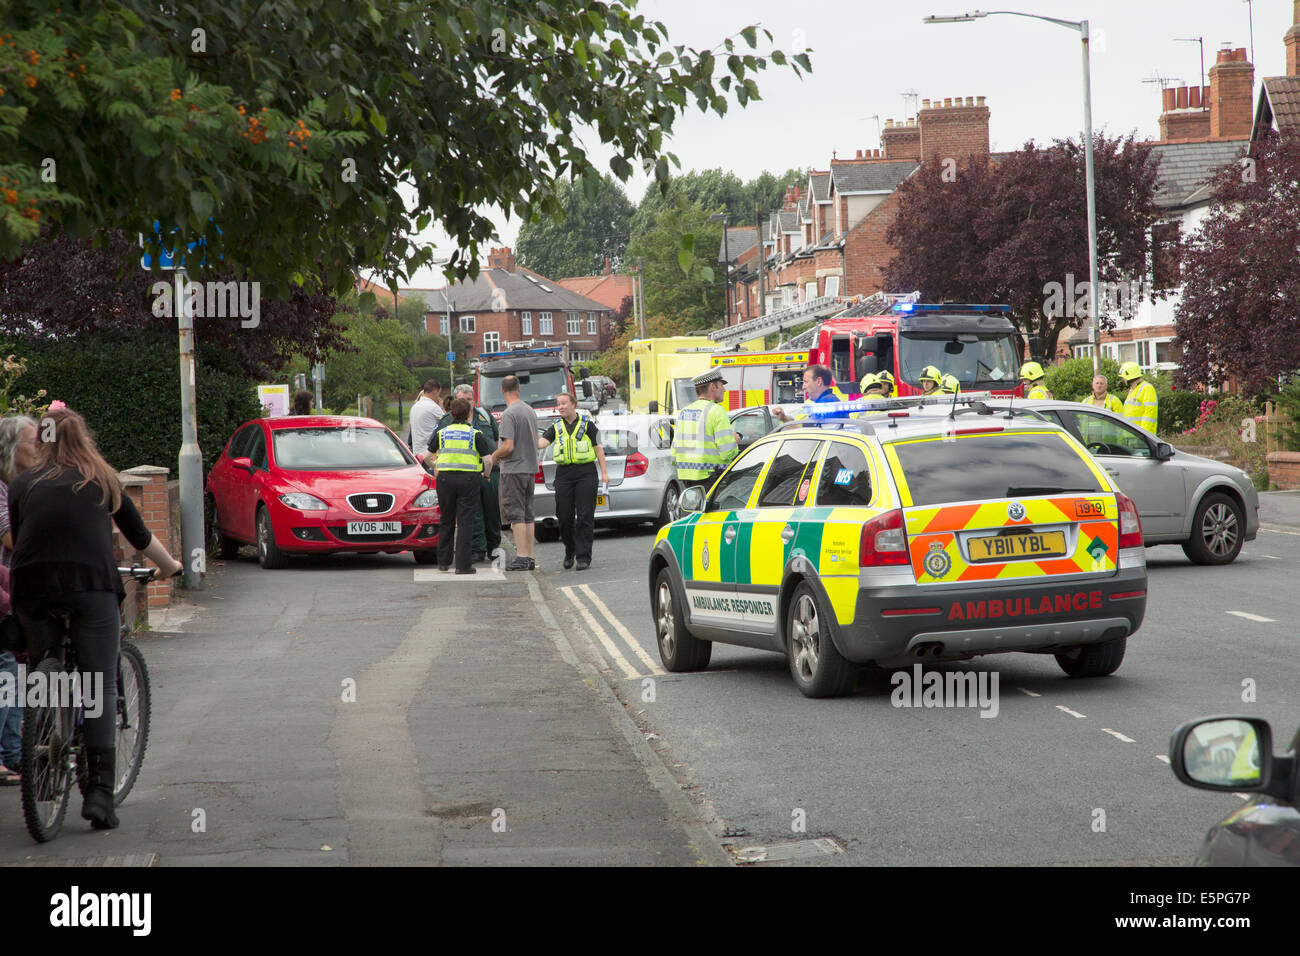 Road accident scene on a busy residential street in York, North ...